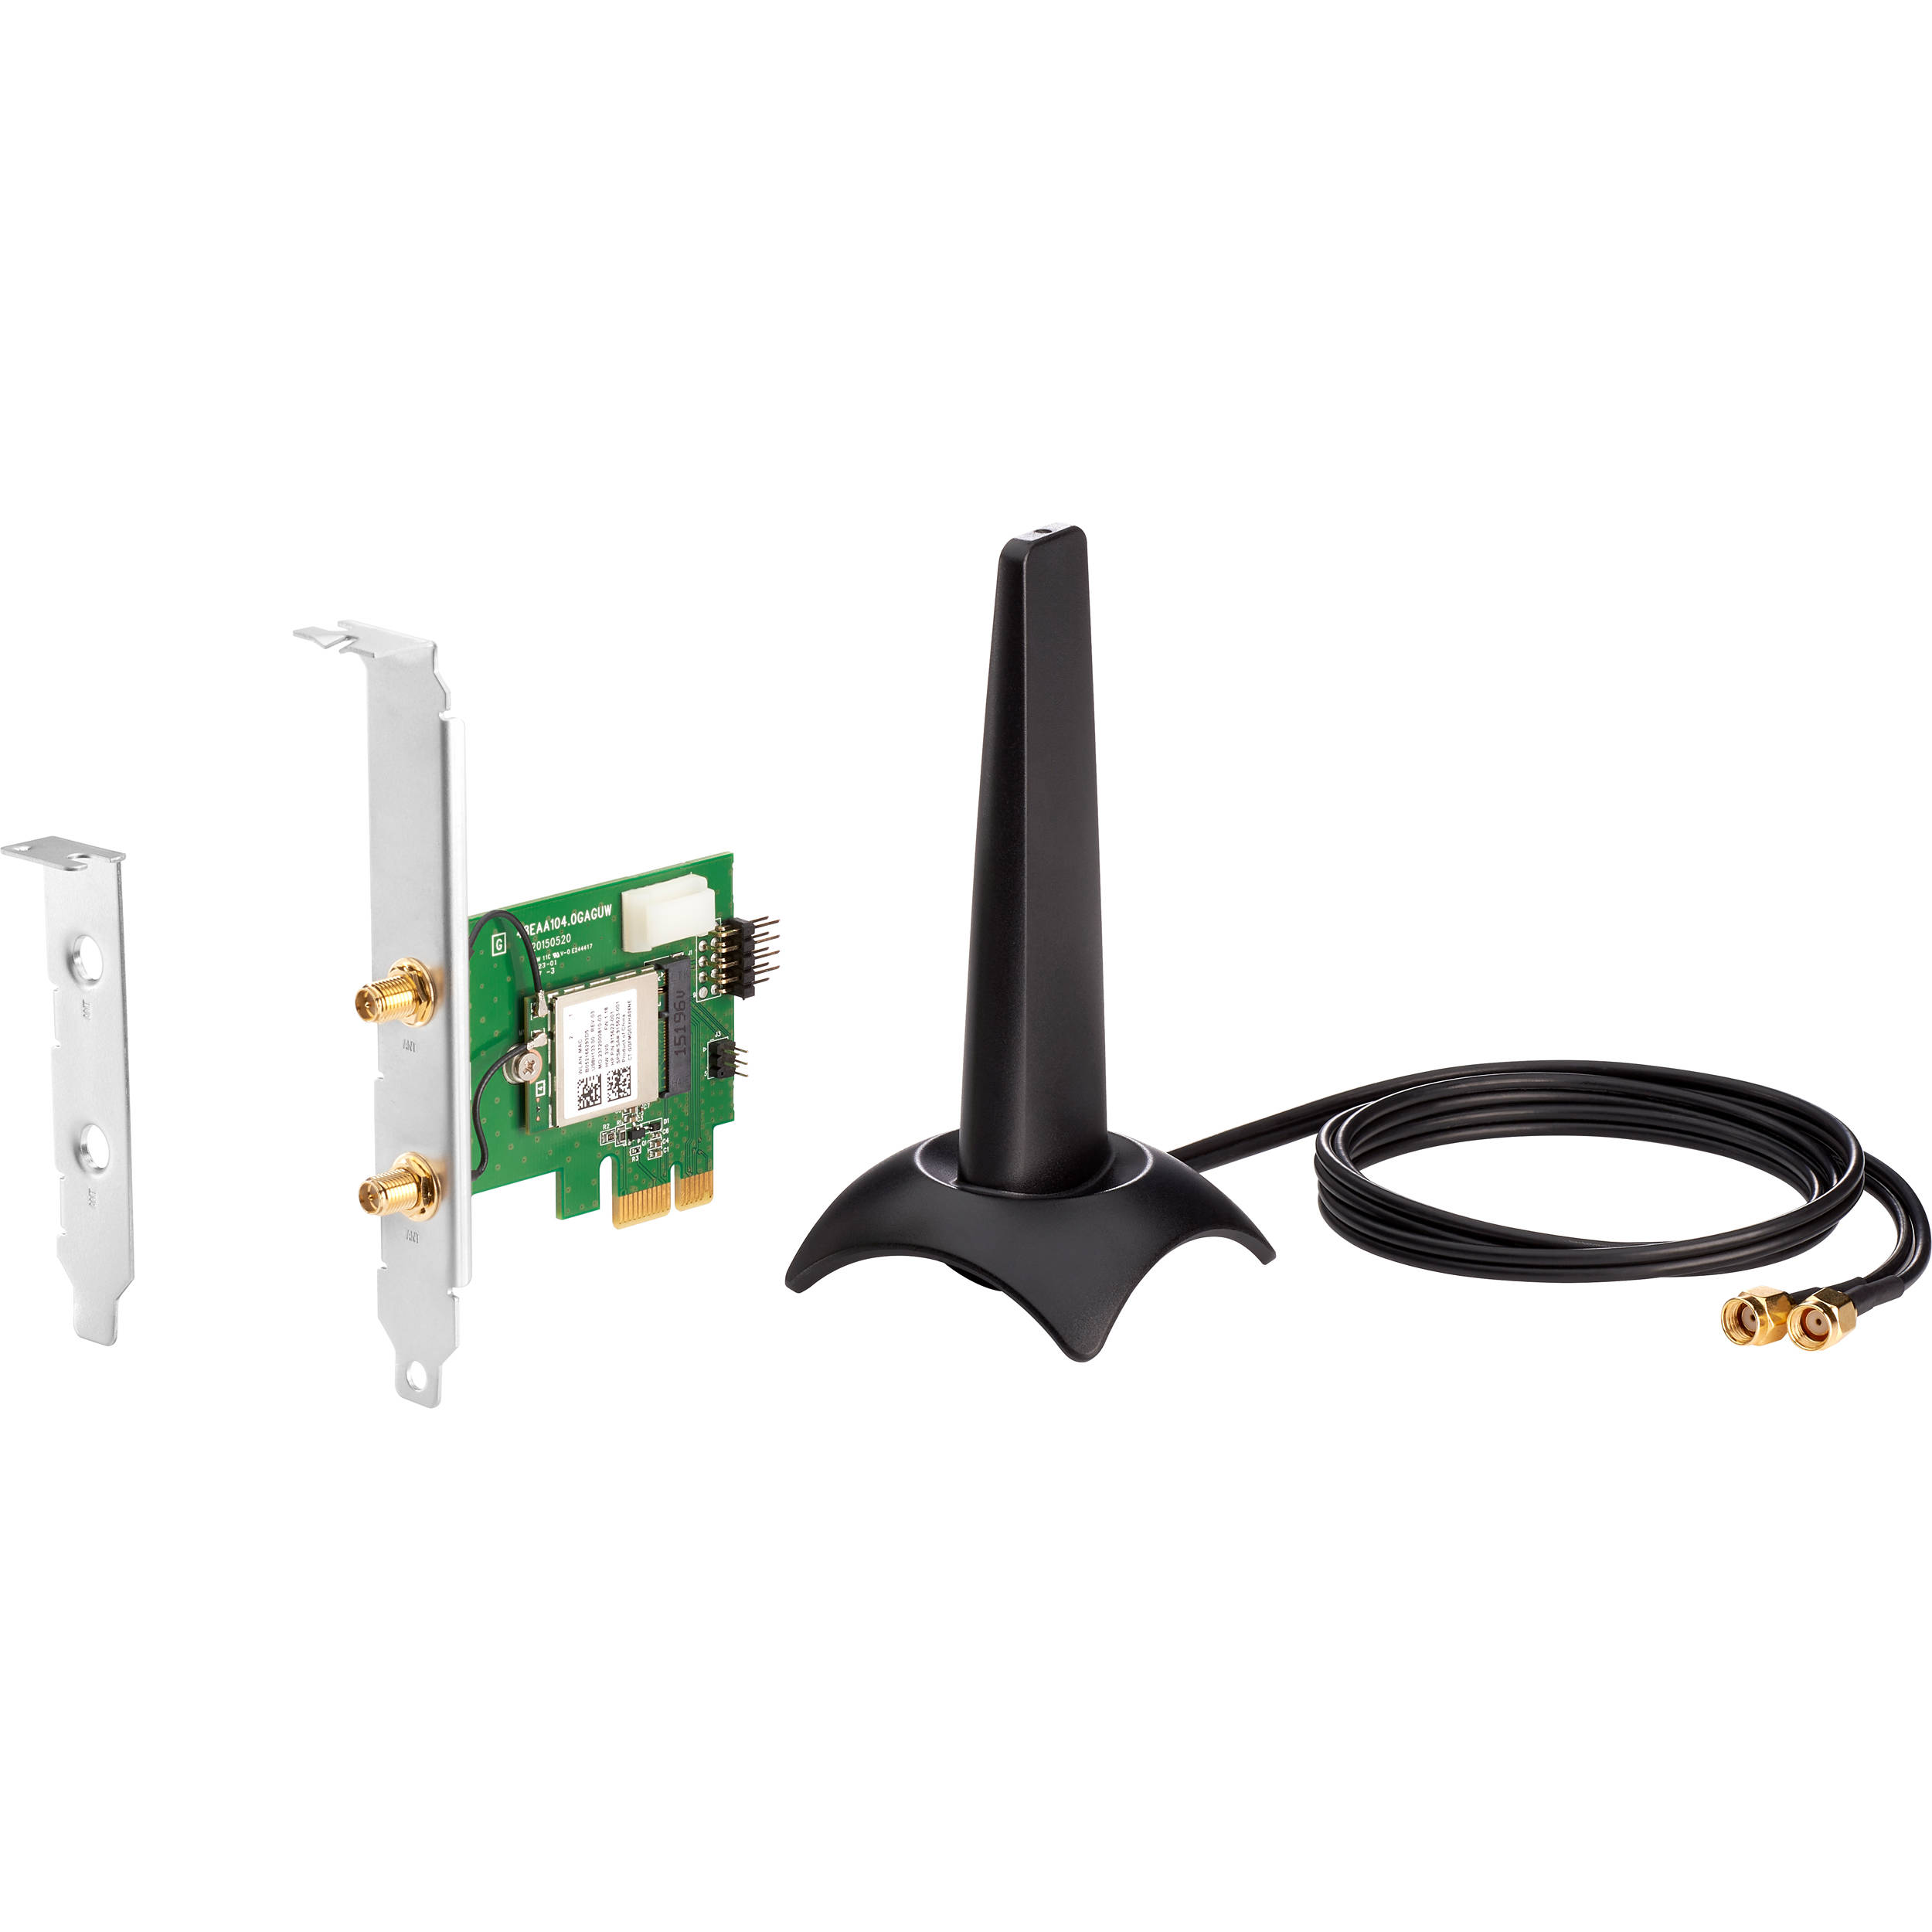 HP Realtek 8822BE Wi-Fi 5 (802 11ac) PCIe x1 Wi-Fi Adapter with Antenna